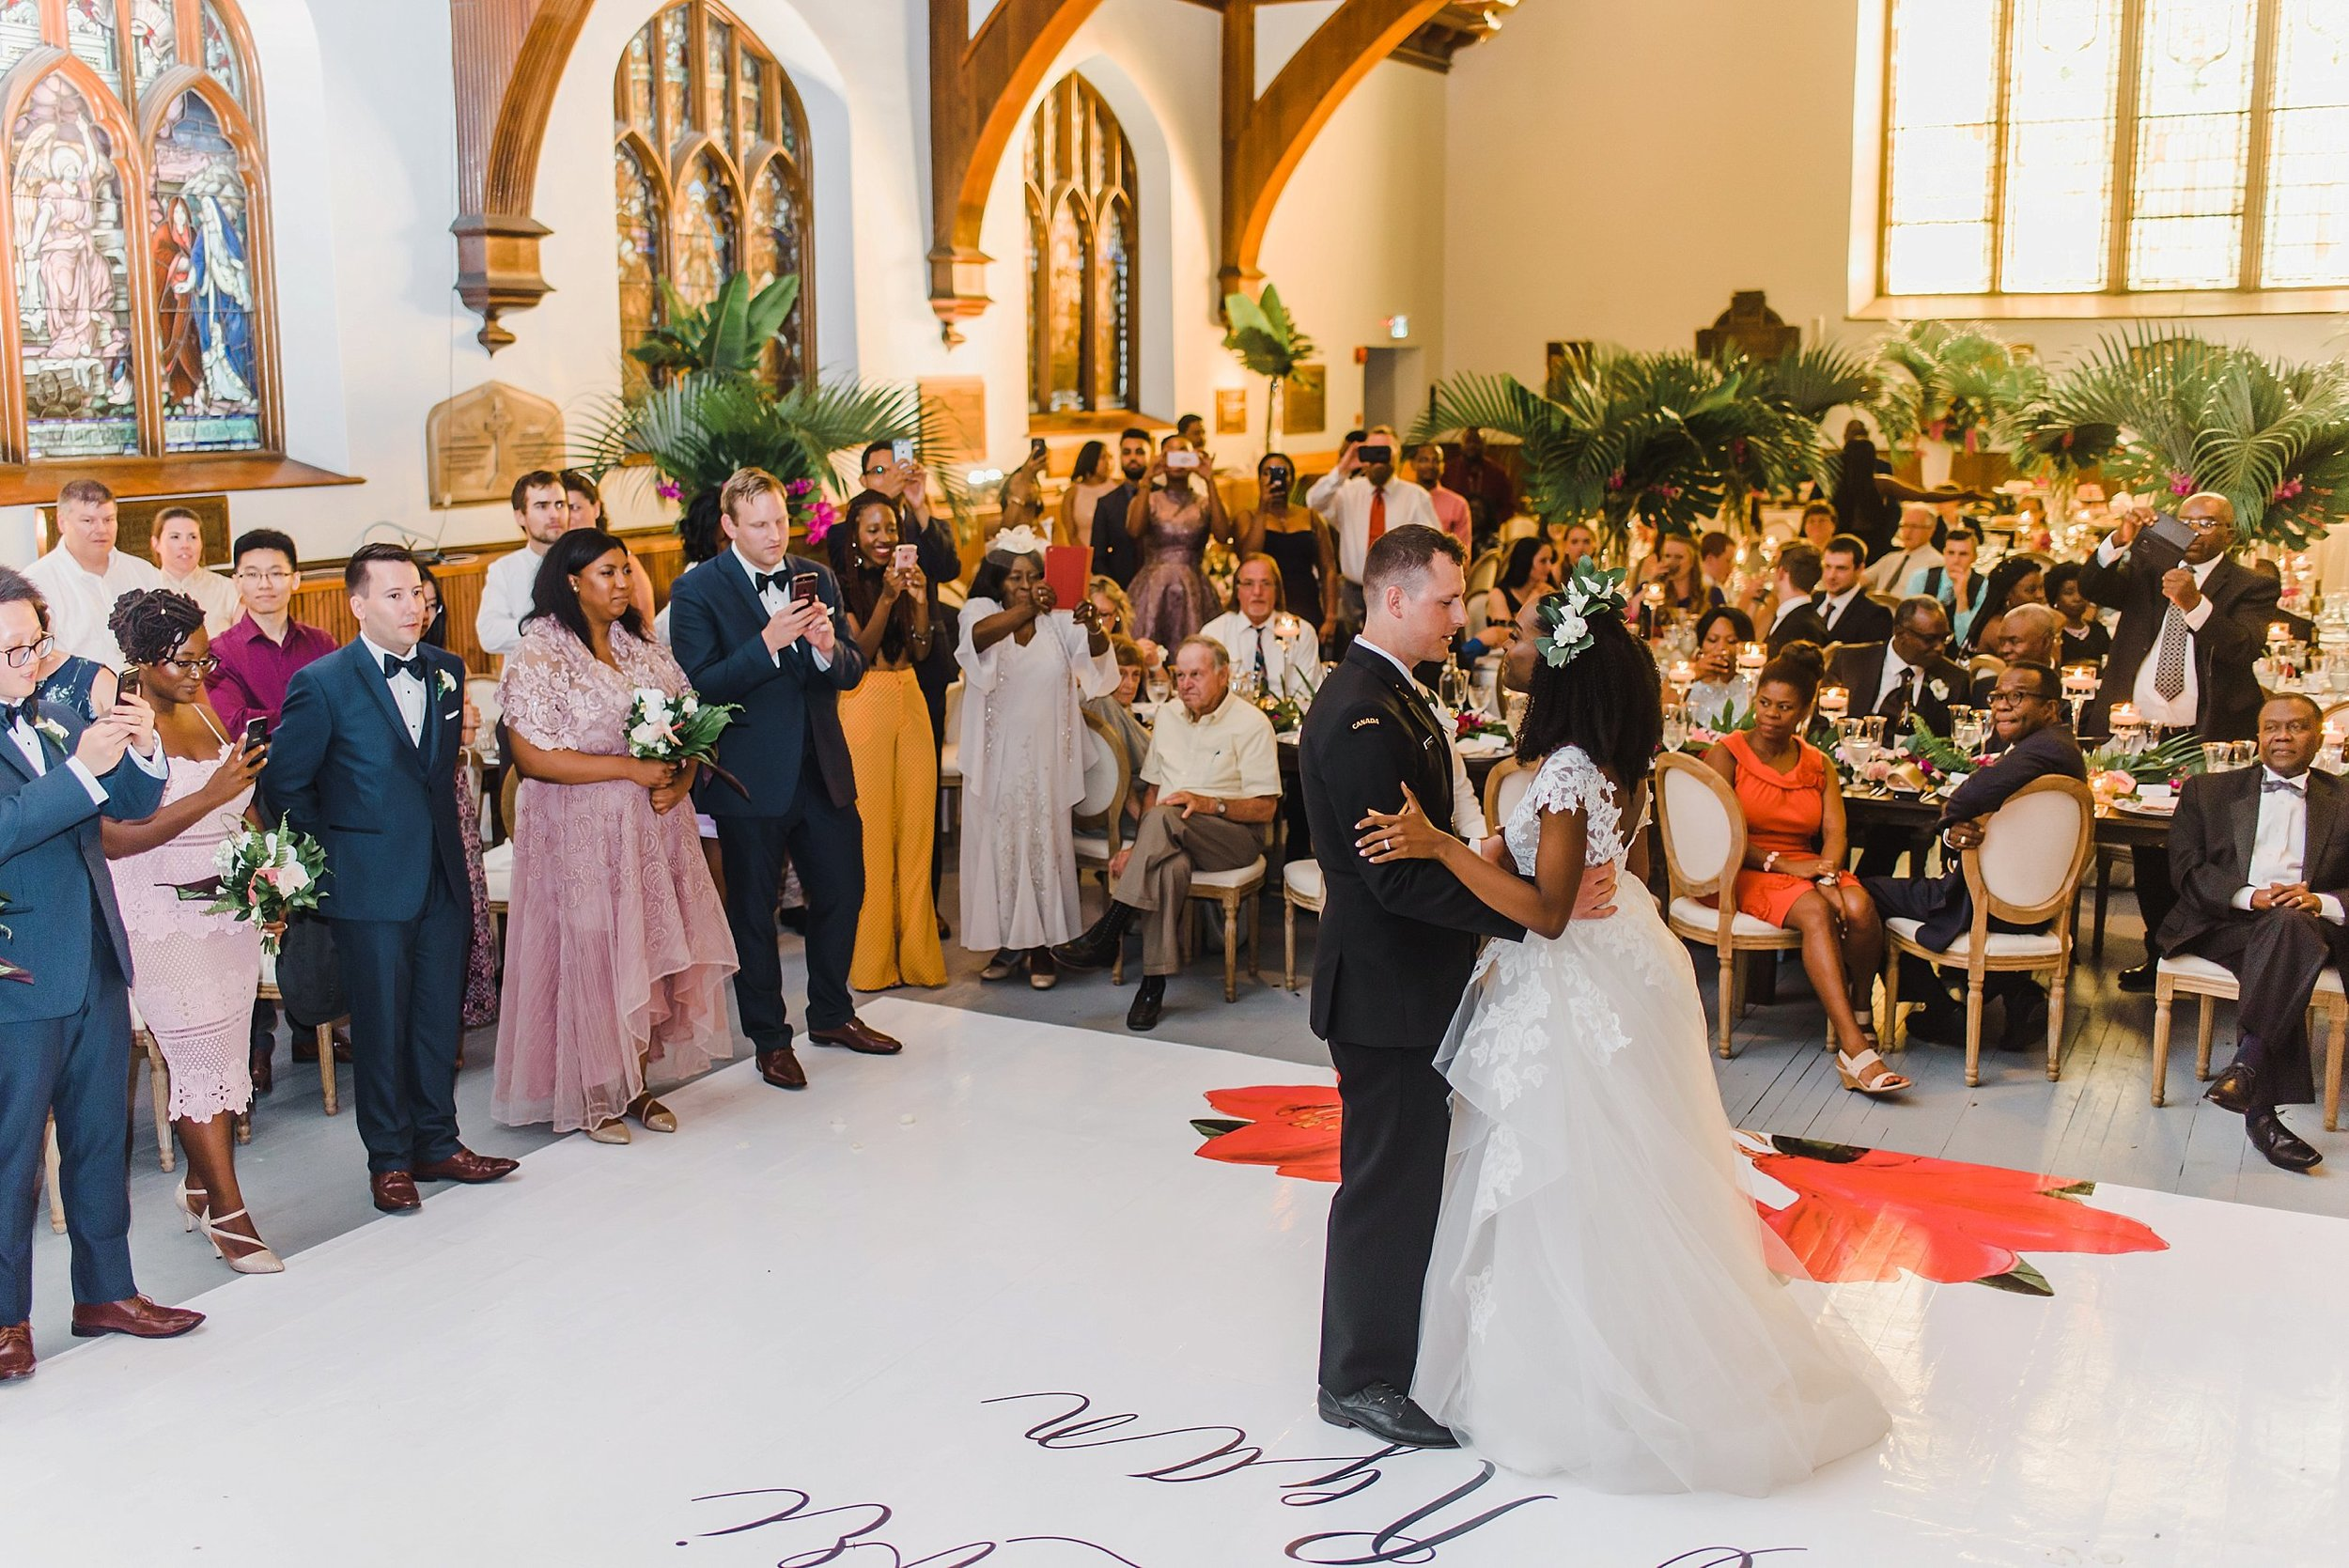 Ann-Lori and Ryan enjoyed a first dance immediately upon entering the reception.  The sun was just about setting and slipped warm rays through the stain-glassed windows for that light glow.